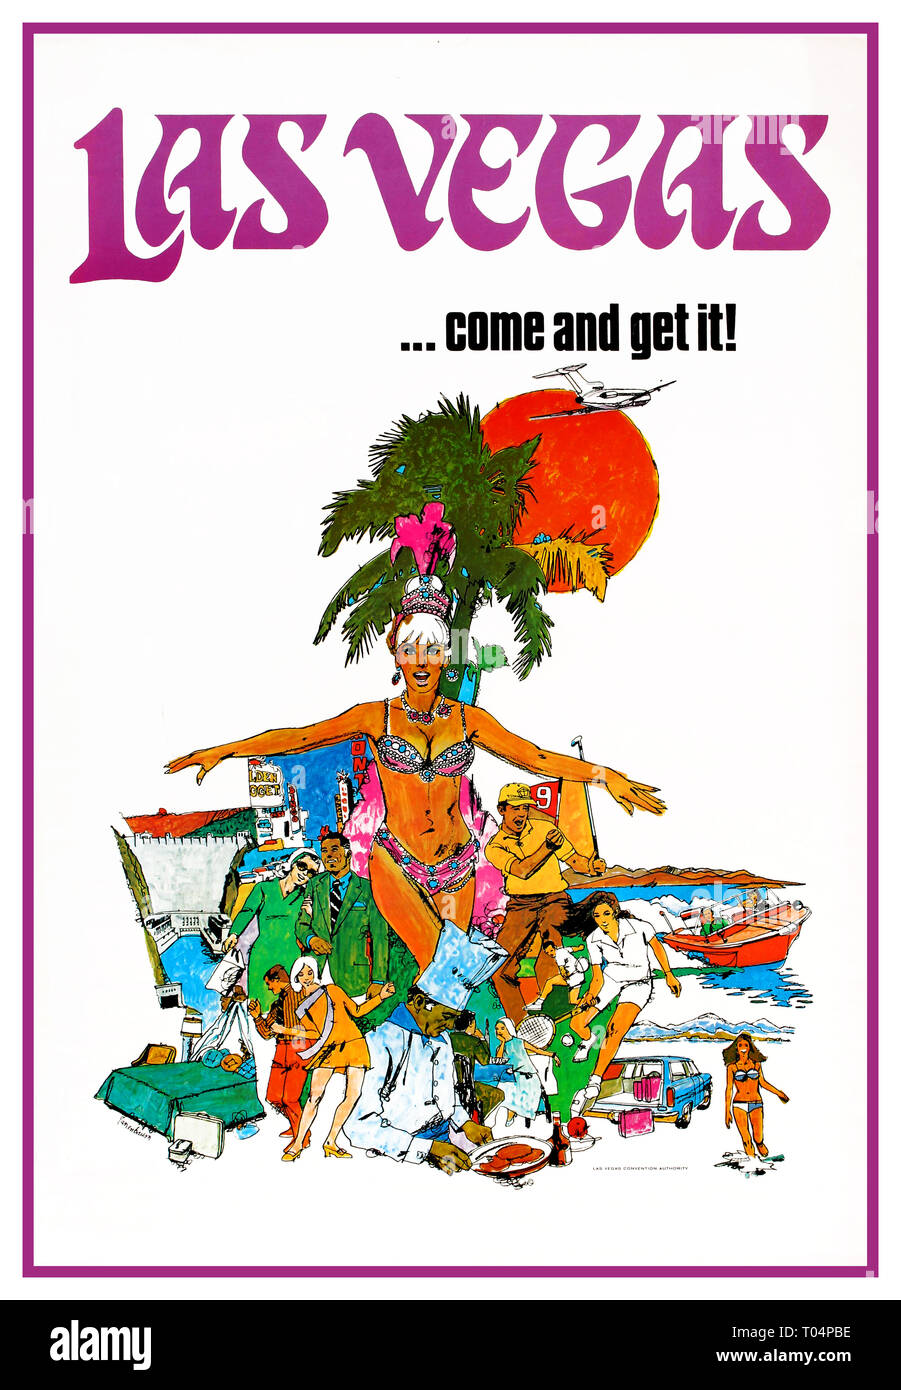 LAS VEGAS USA Original vintage travel advertising poster for Las Vegas … Come and get it! Colourful illustration depicting various activities and sports that can be enjoyed in Las Vegas, including golf, boating, shopping, entertainment, tennis, dining, swimming, luxurious hotels, casinos, nightclubs etc. with an exotic dancer wearing feathers and a sparkling pink outfit in the centre in front of a palm tree and bright sun with a plane flying below the stylised title text. This poster was published by the Las Vegas Convention Authority.  USA. 1970 - Stock Image